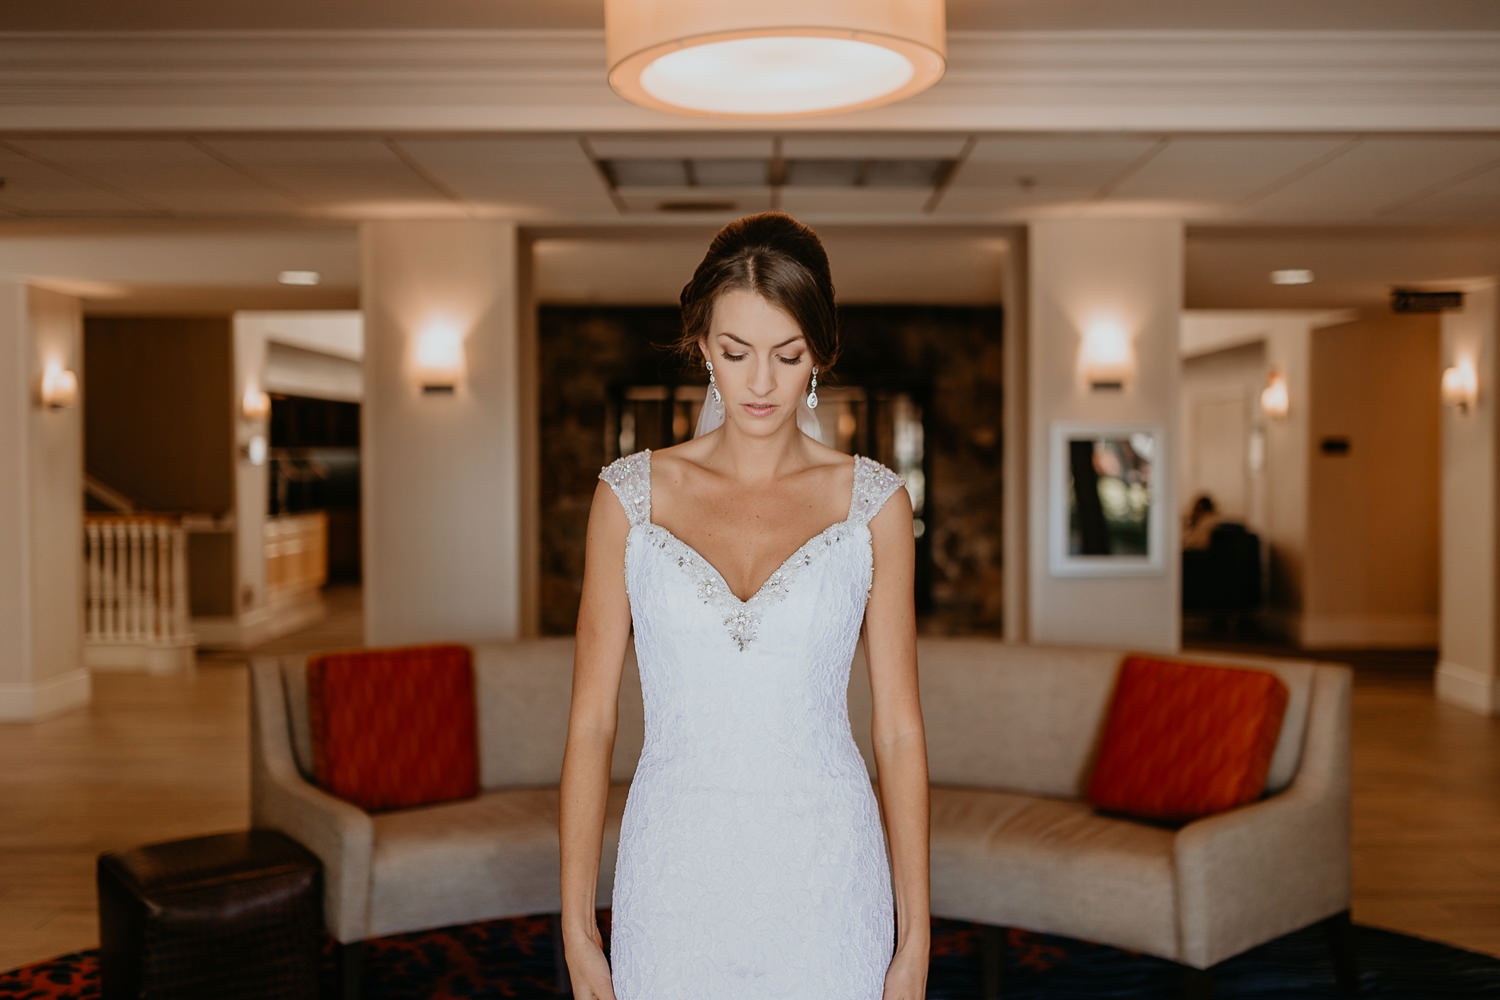 bride waist up looking down thinking in Lake Mary Hilton lobby